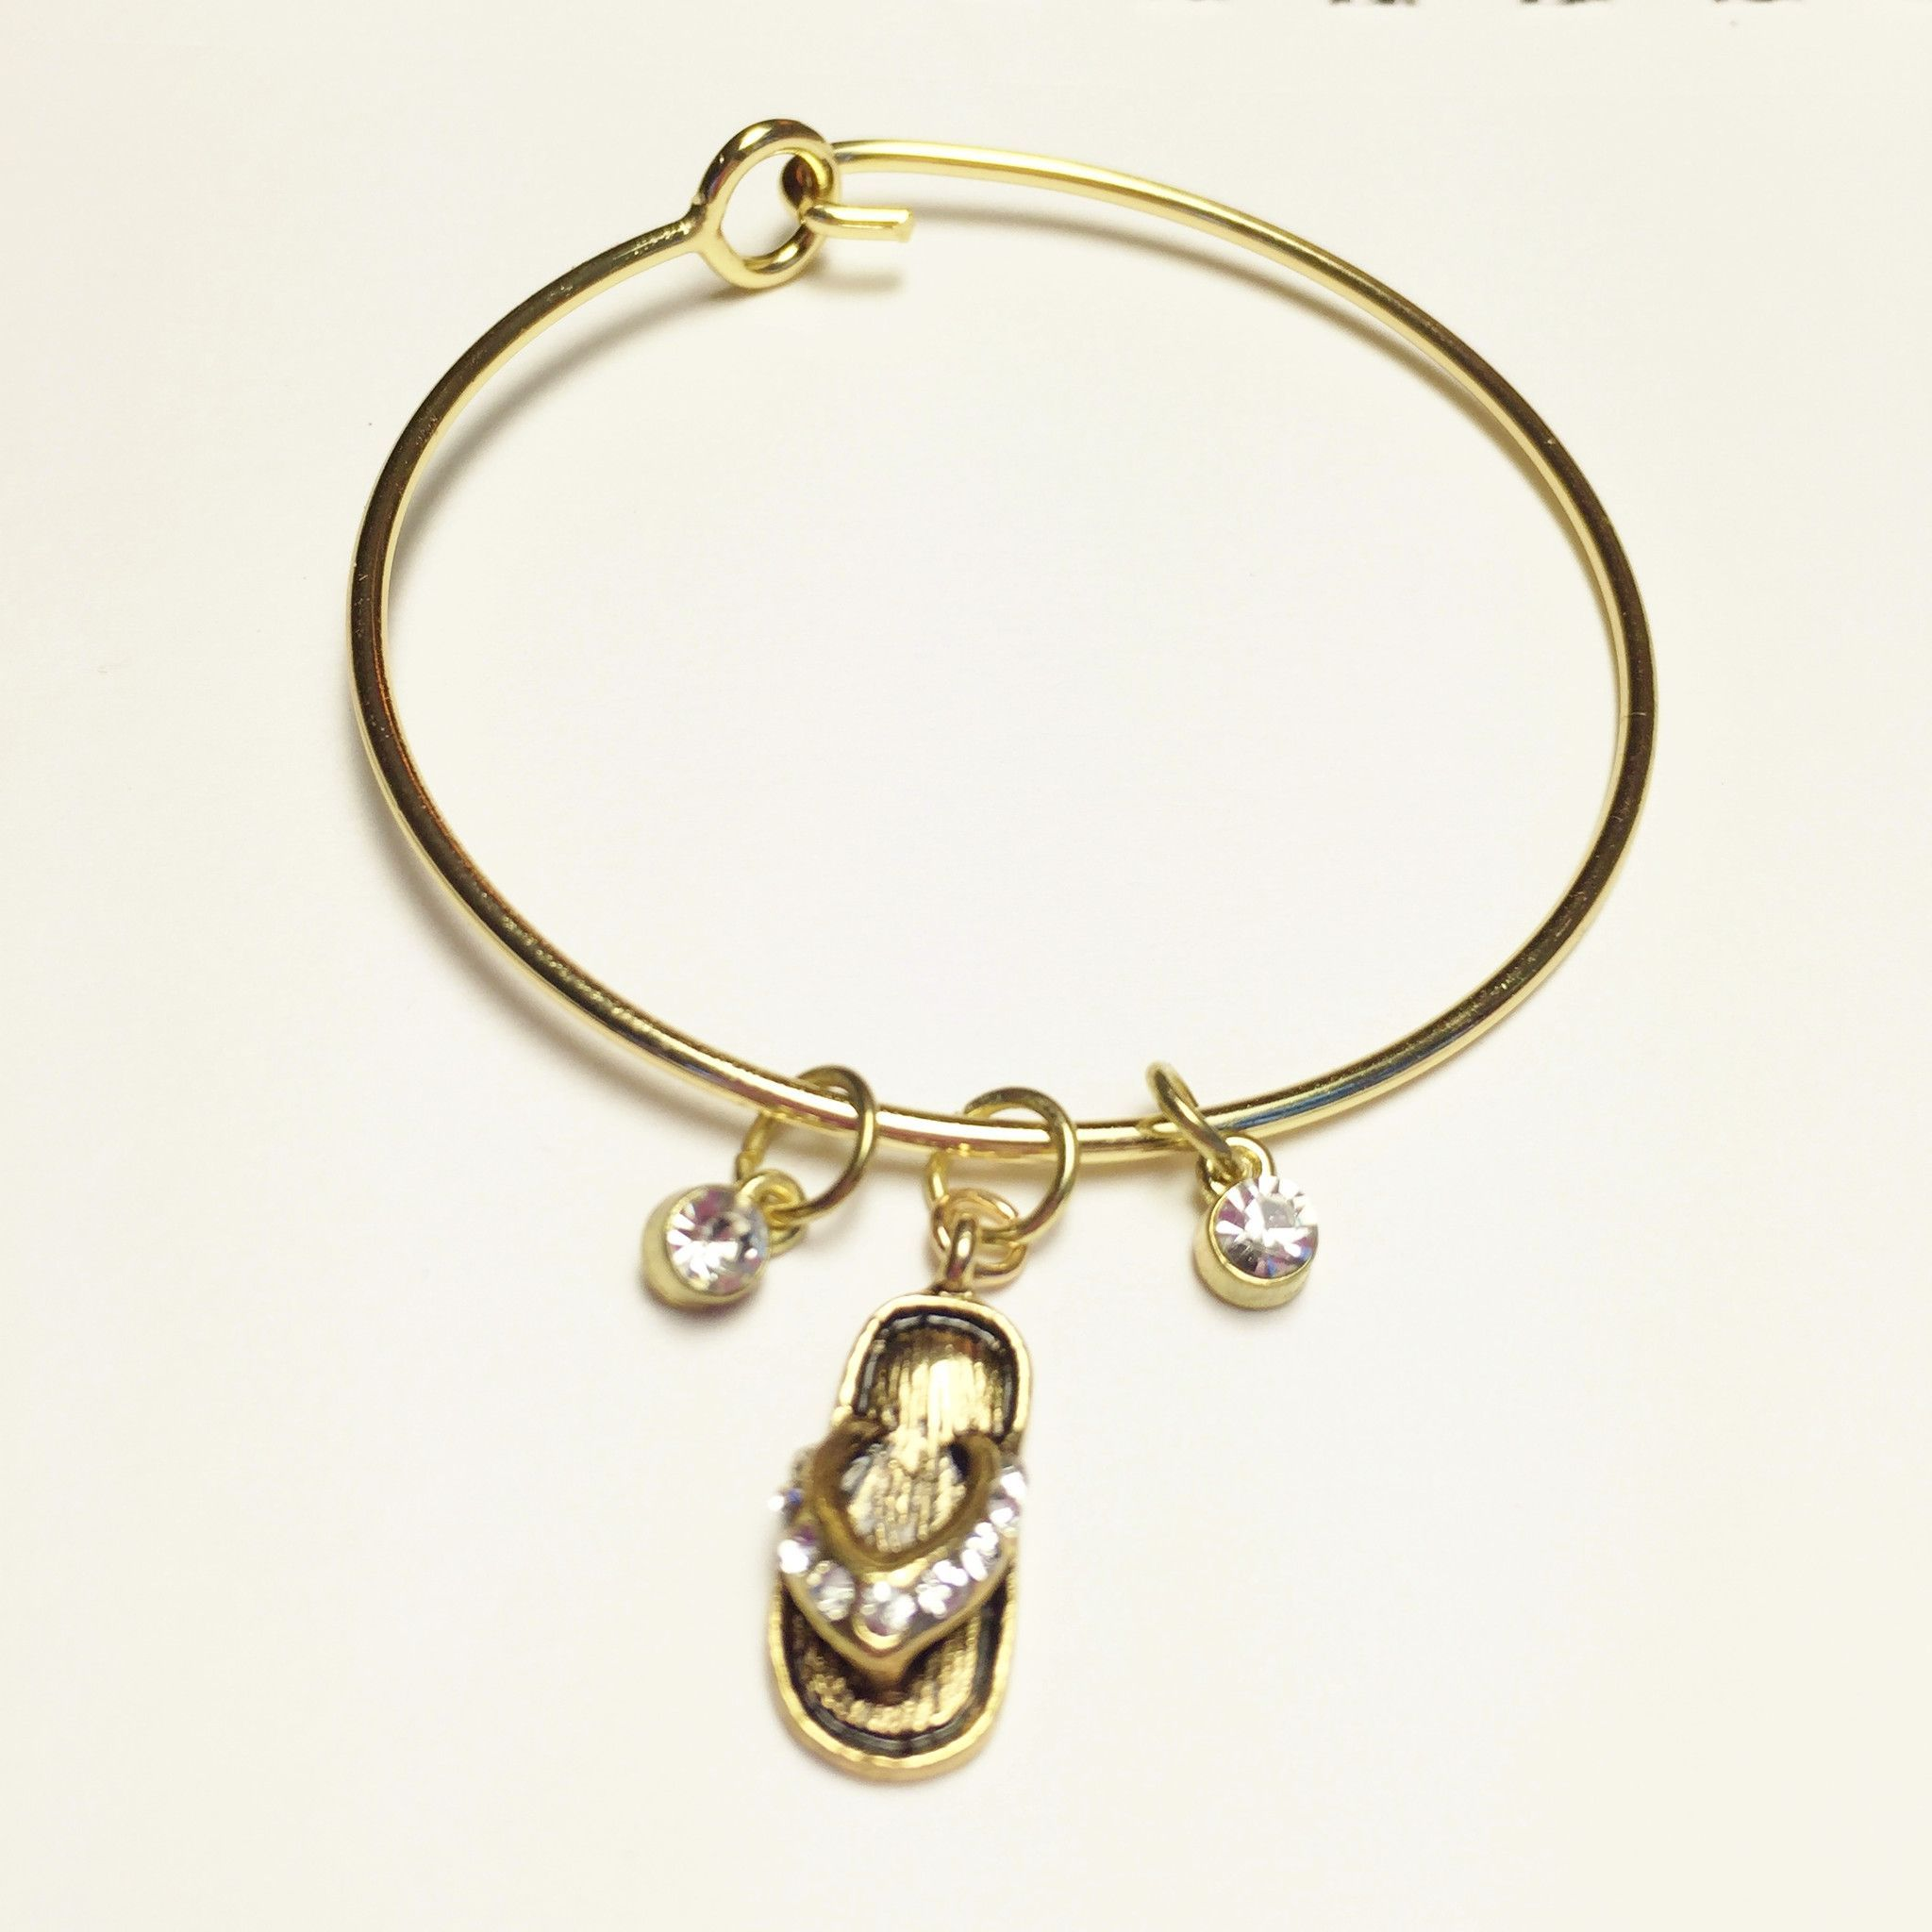 s designed add bangle u grandmothers grandkids bracelets charm in bracelet grandma women initials blessings bangles and your for charms gold the